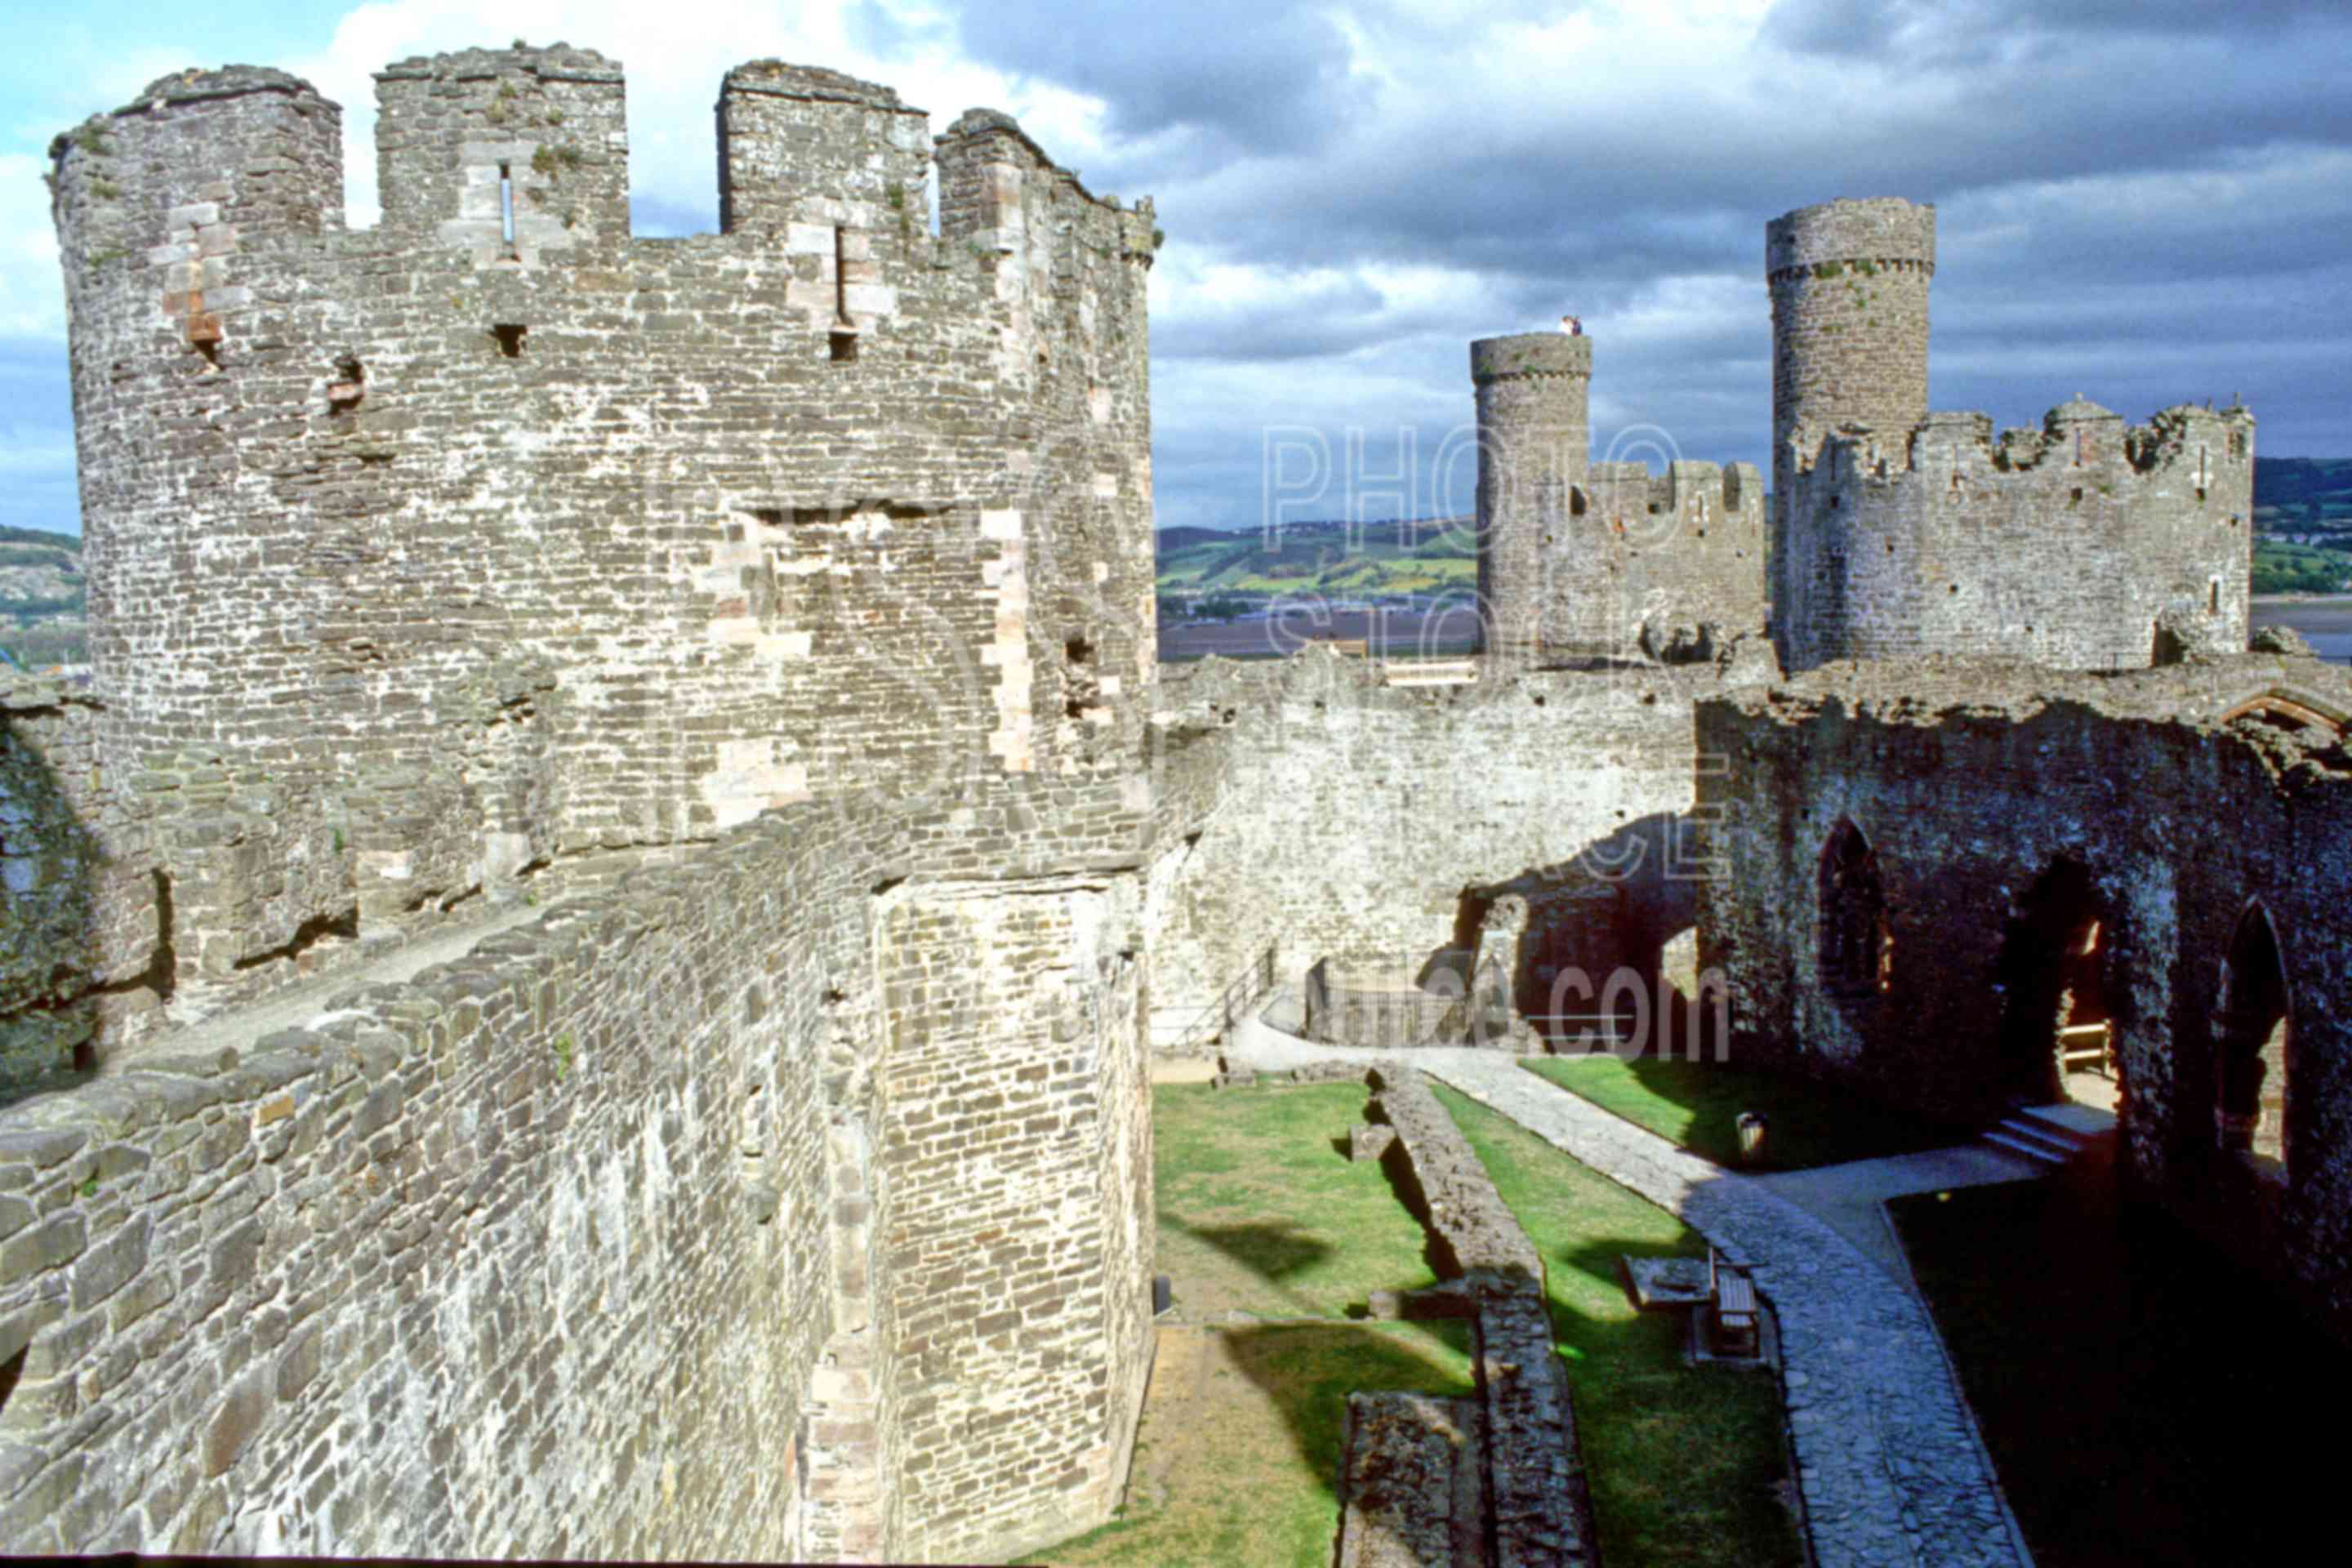 Conwy Castle,castle,europe,ramparts,architecture,castles